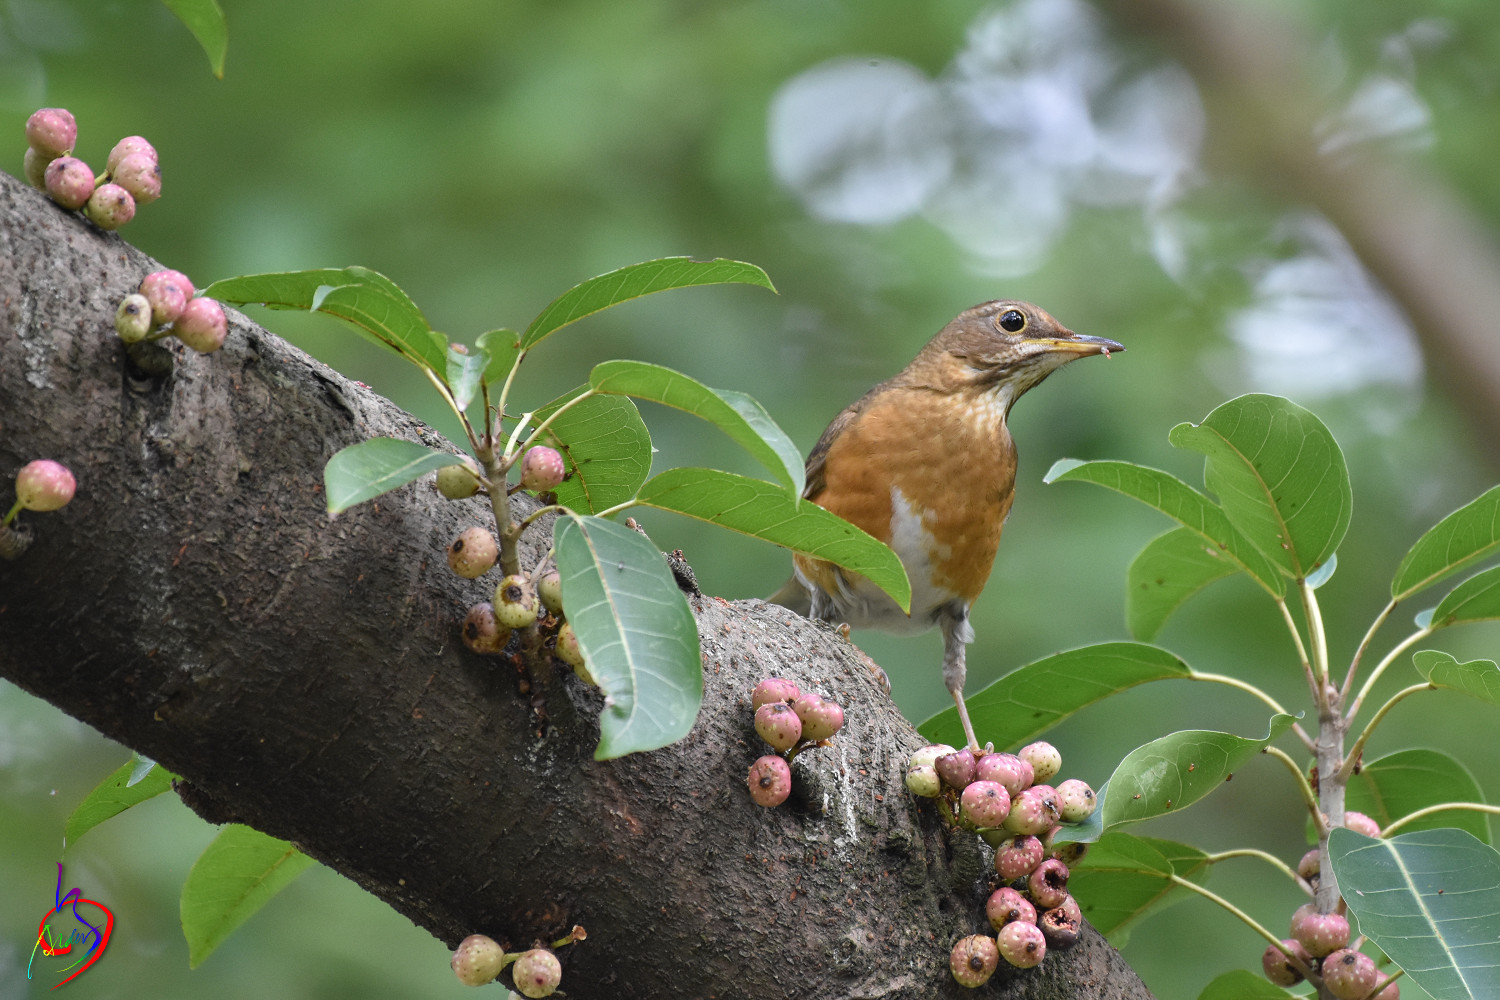 Brown-headed_Thrush_4712